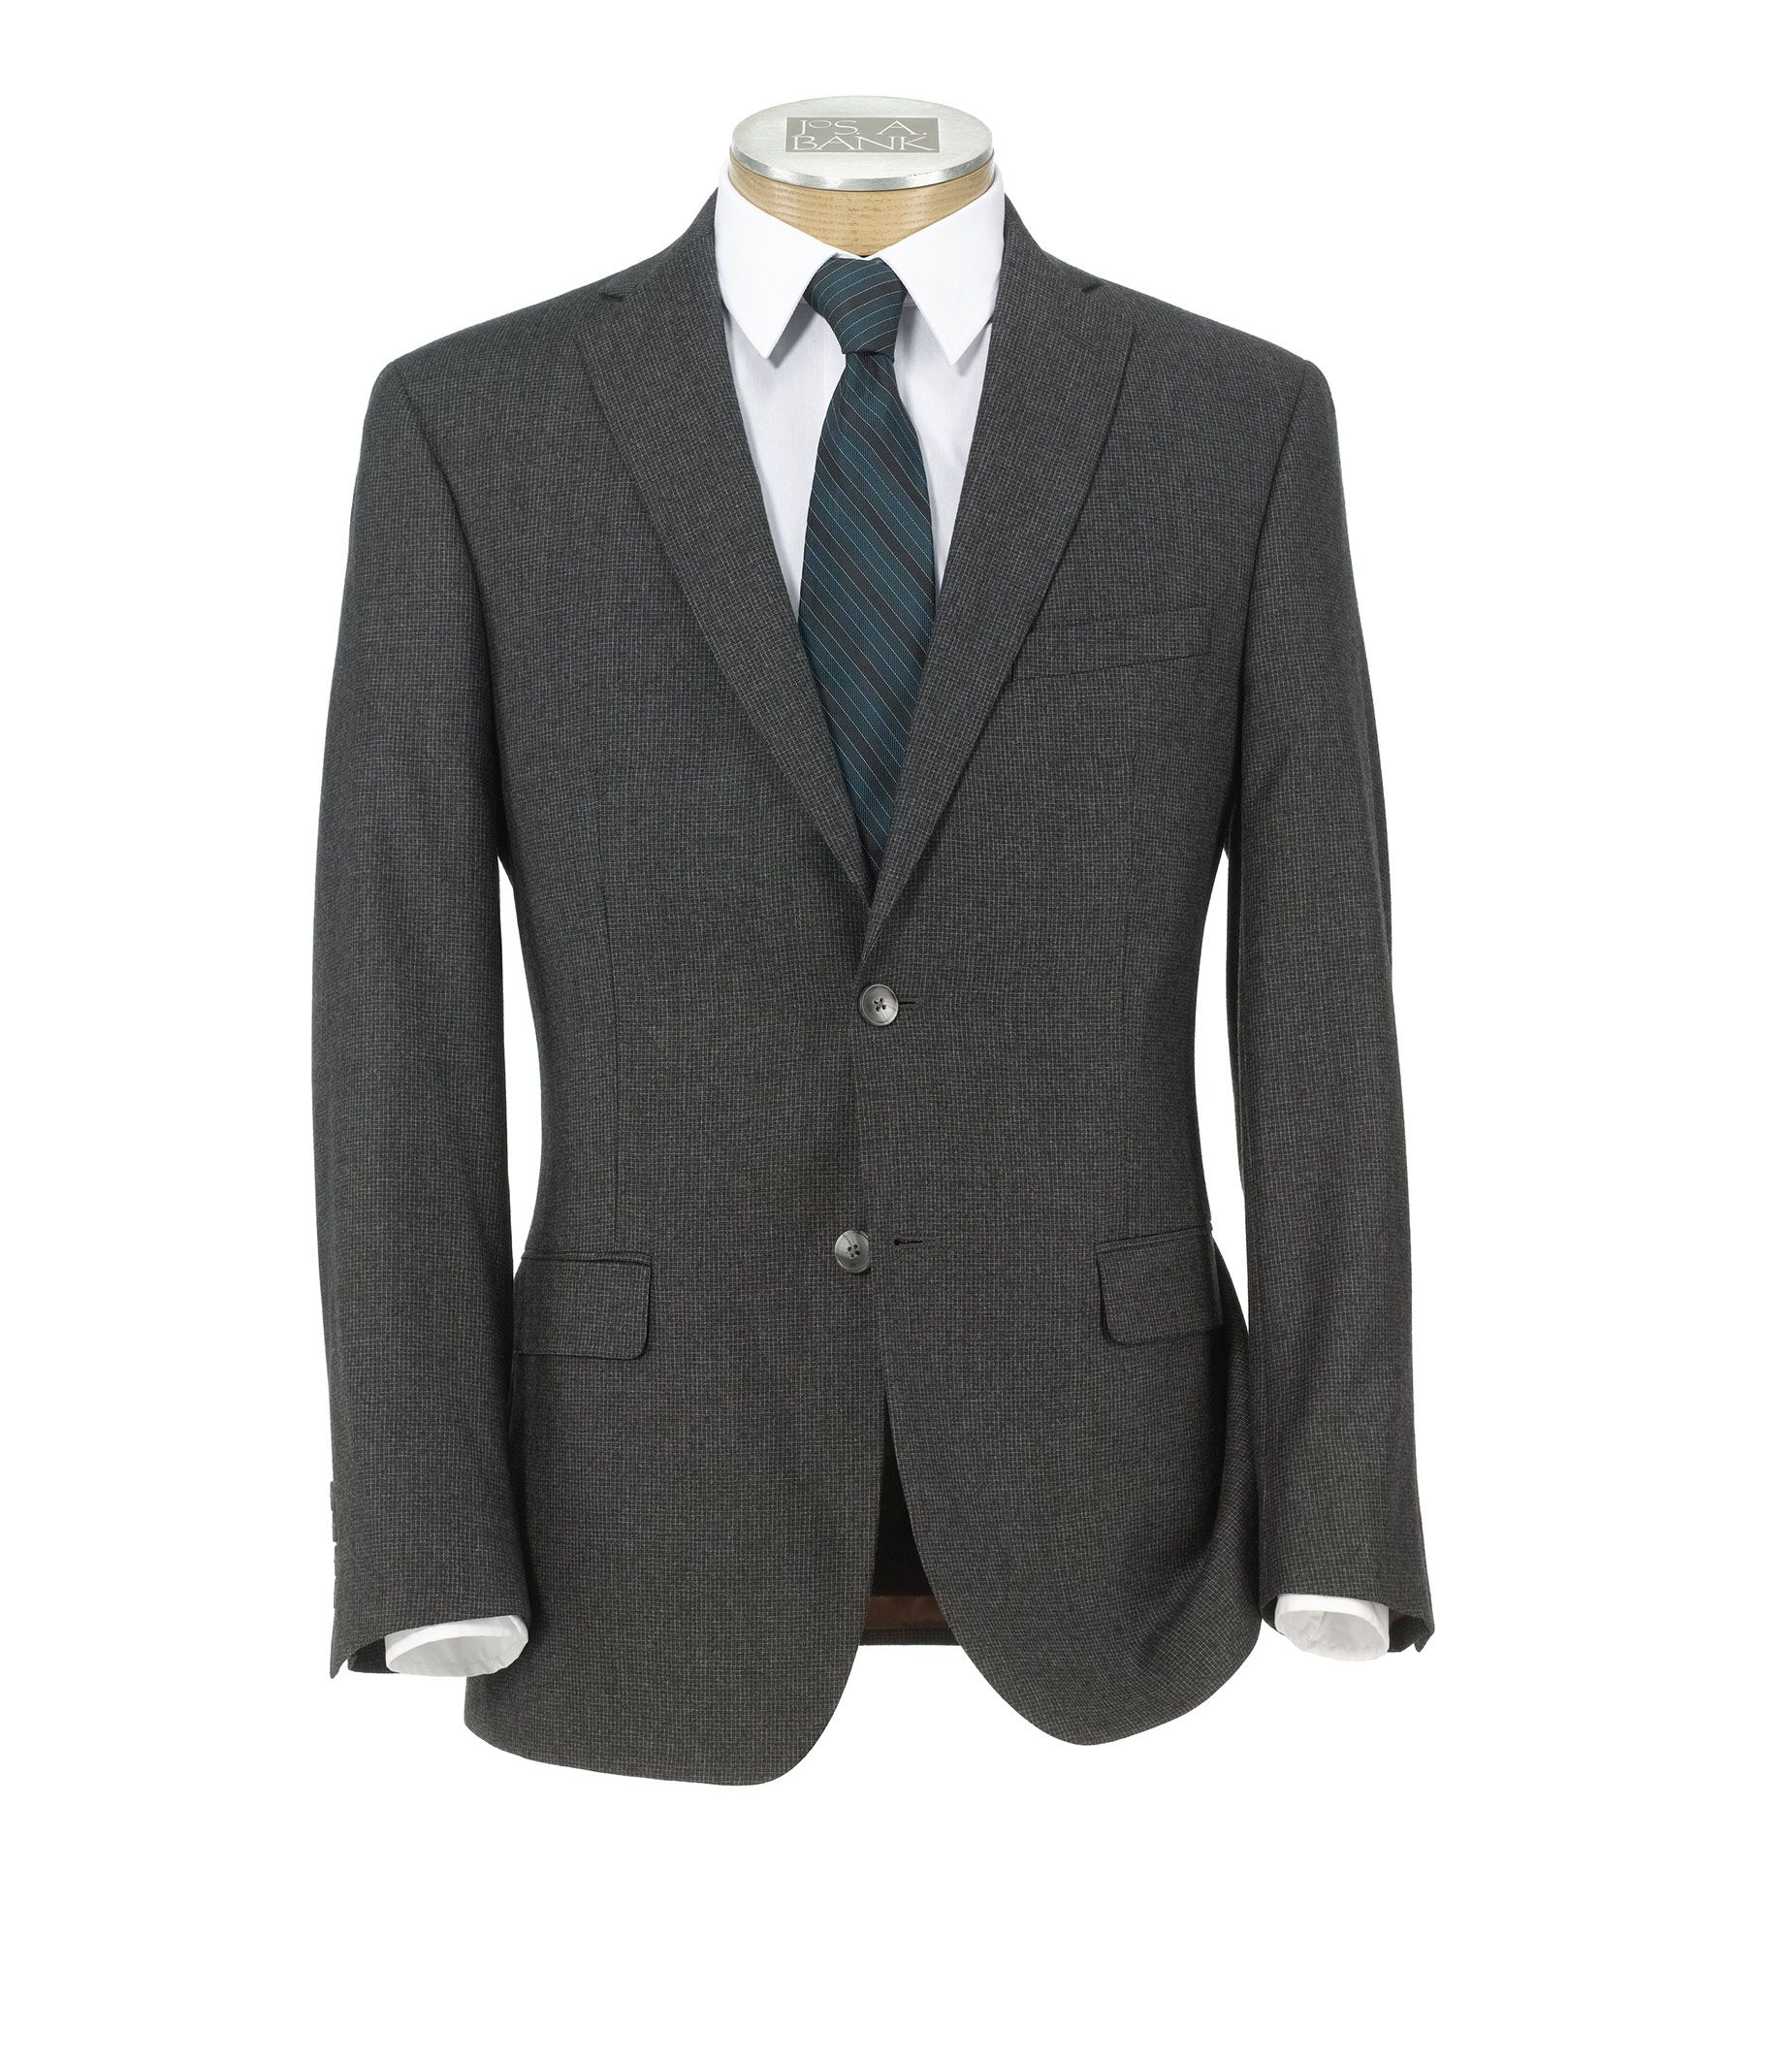 Jos a bank joseph slim fit 2 button wool cashmere plain for Jos a bank tailored fit vs slim fit shirts